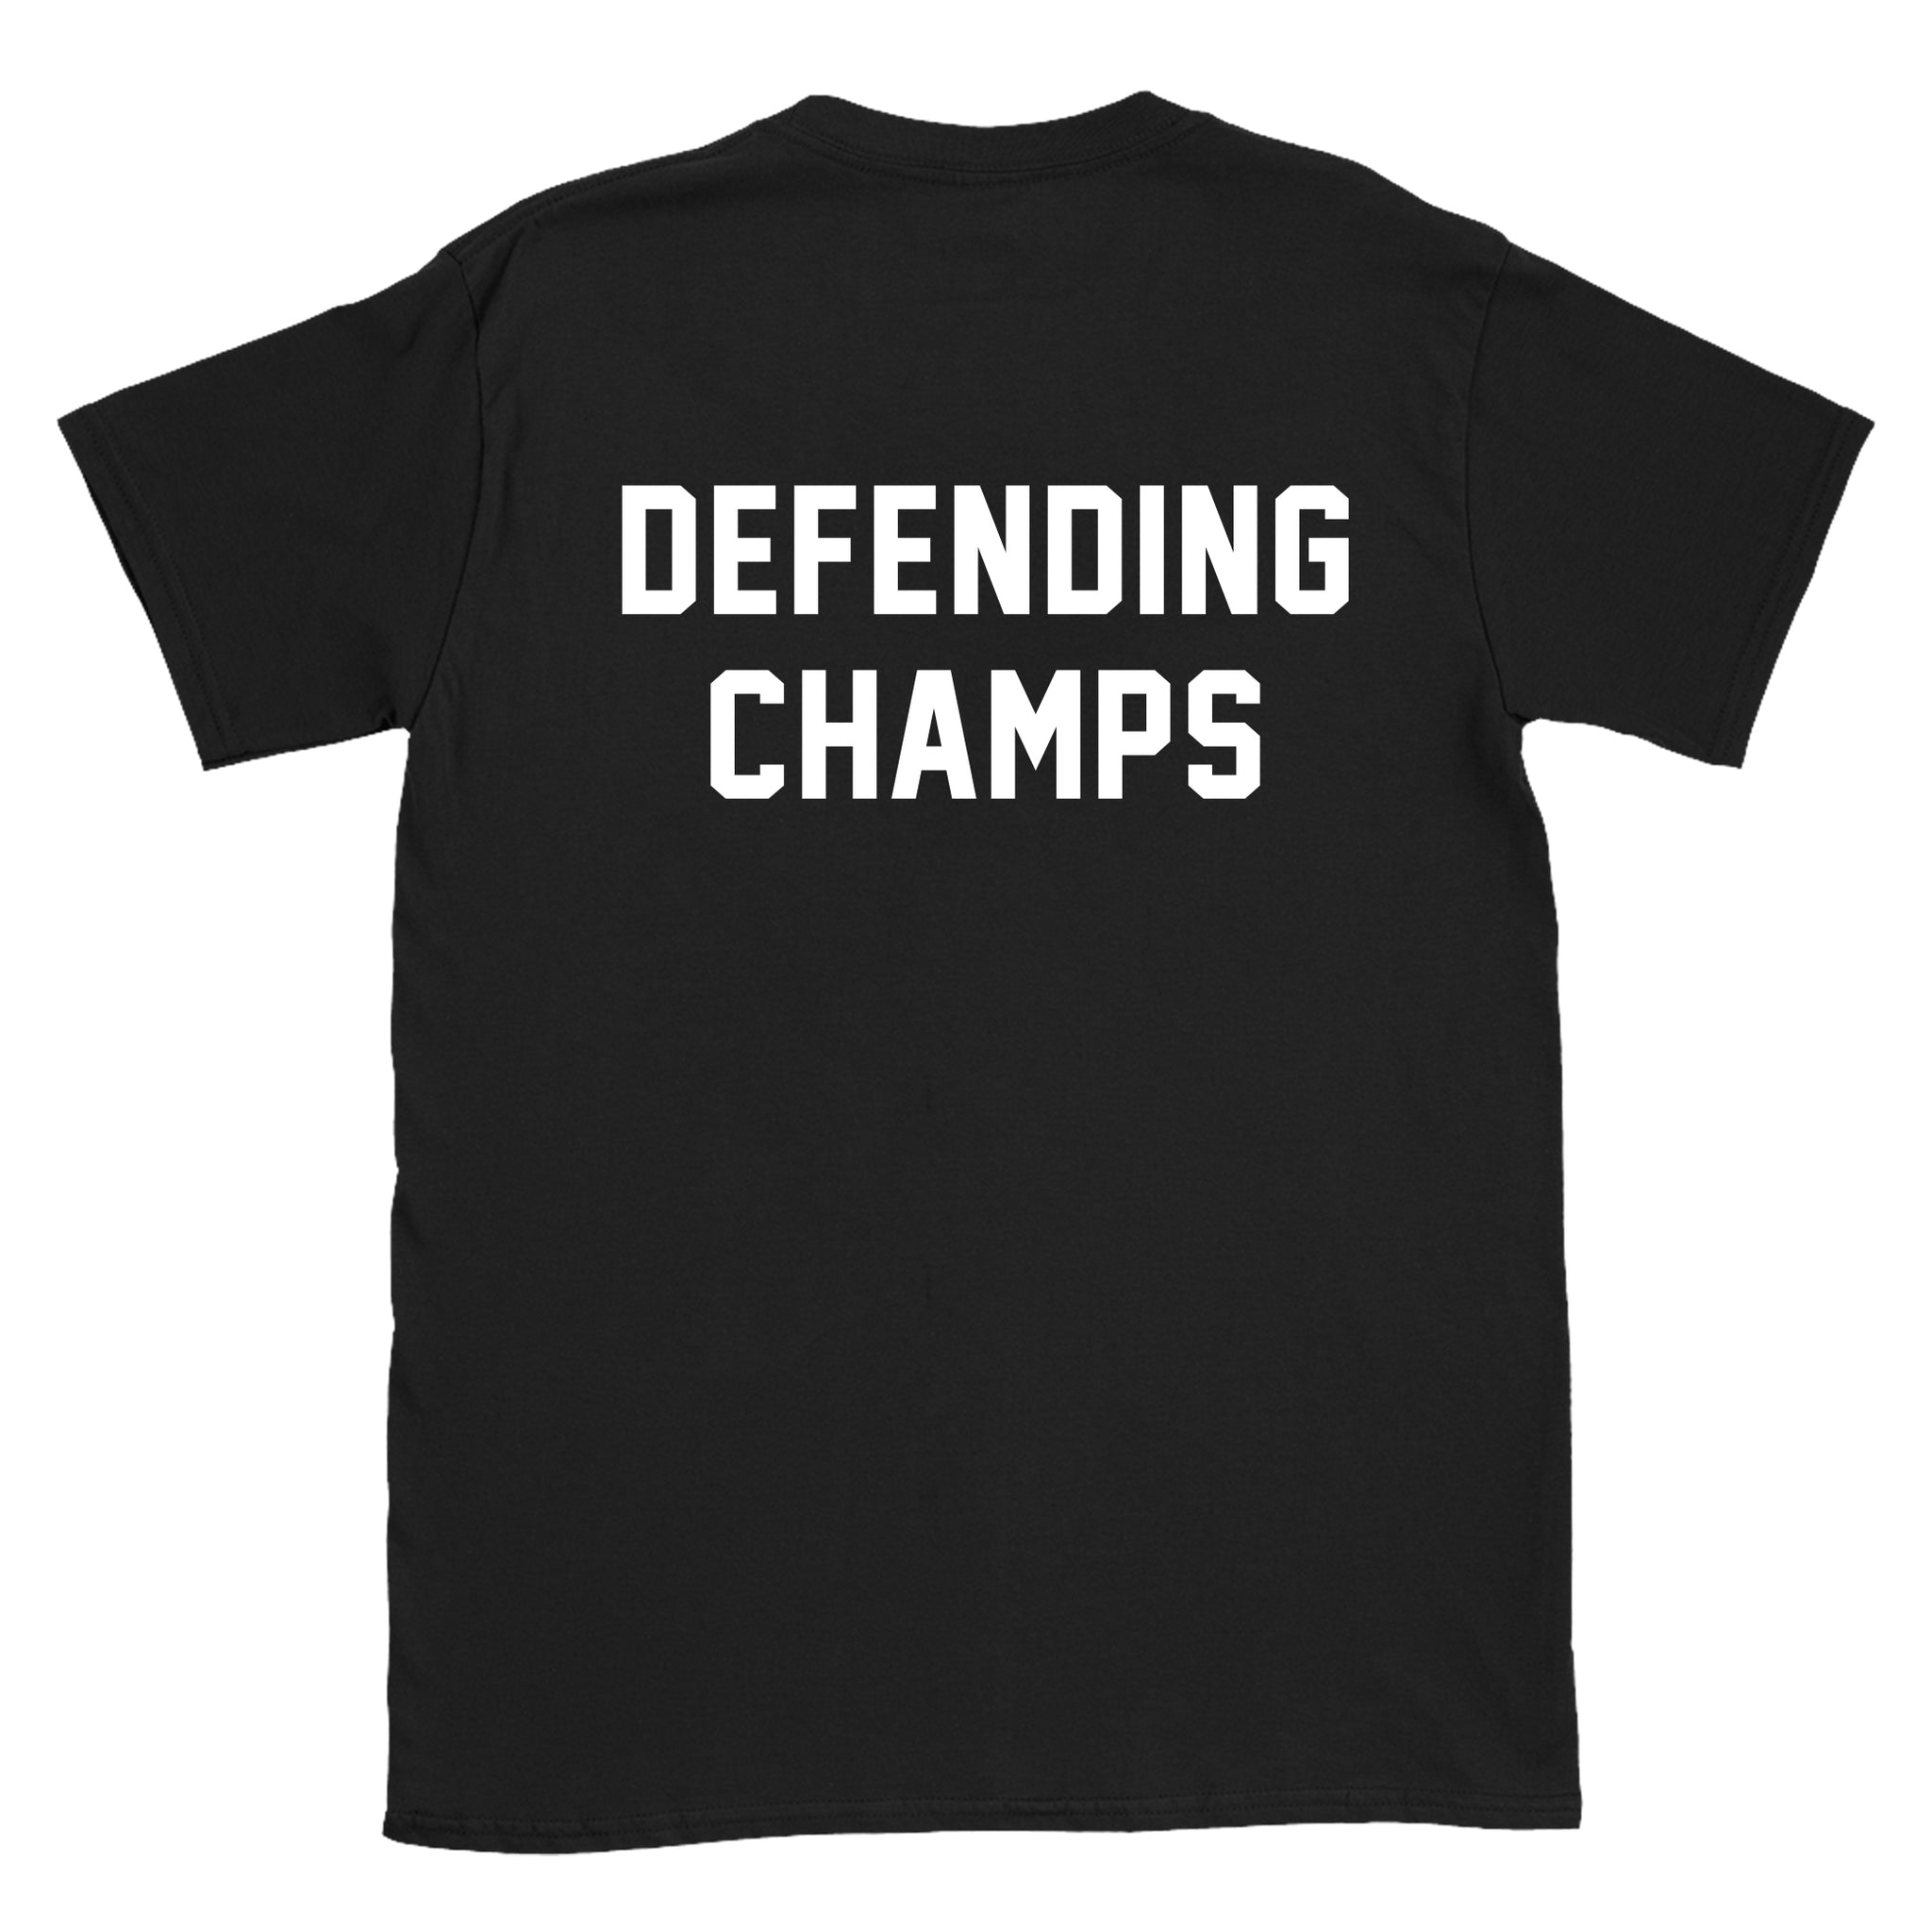 DEFENDING CHAMPS - Black